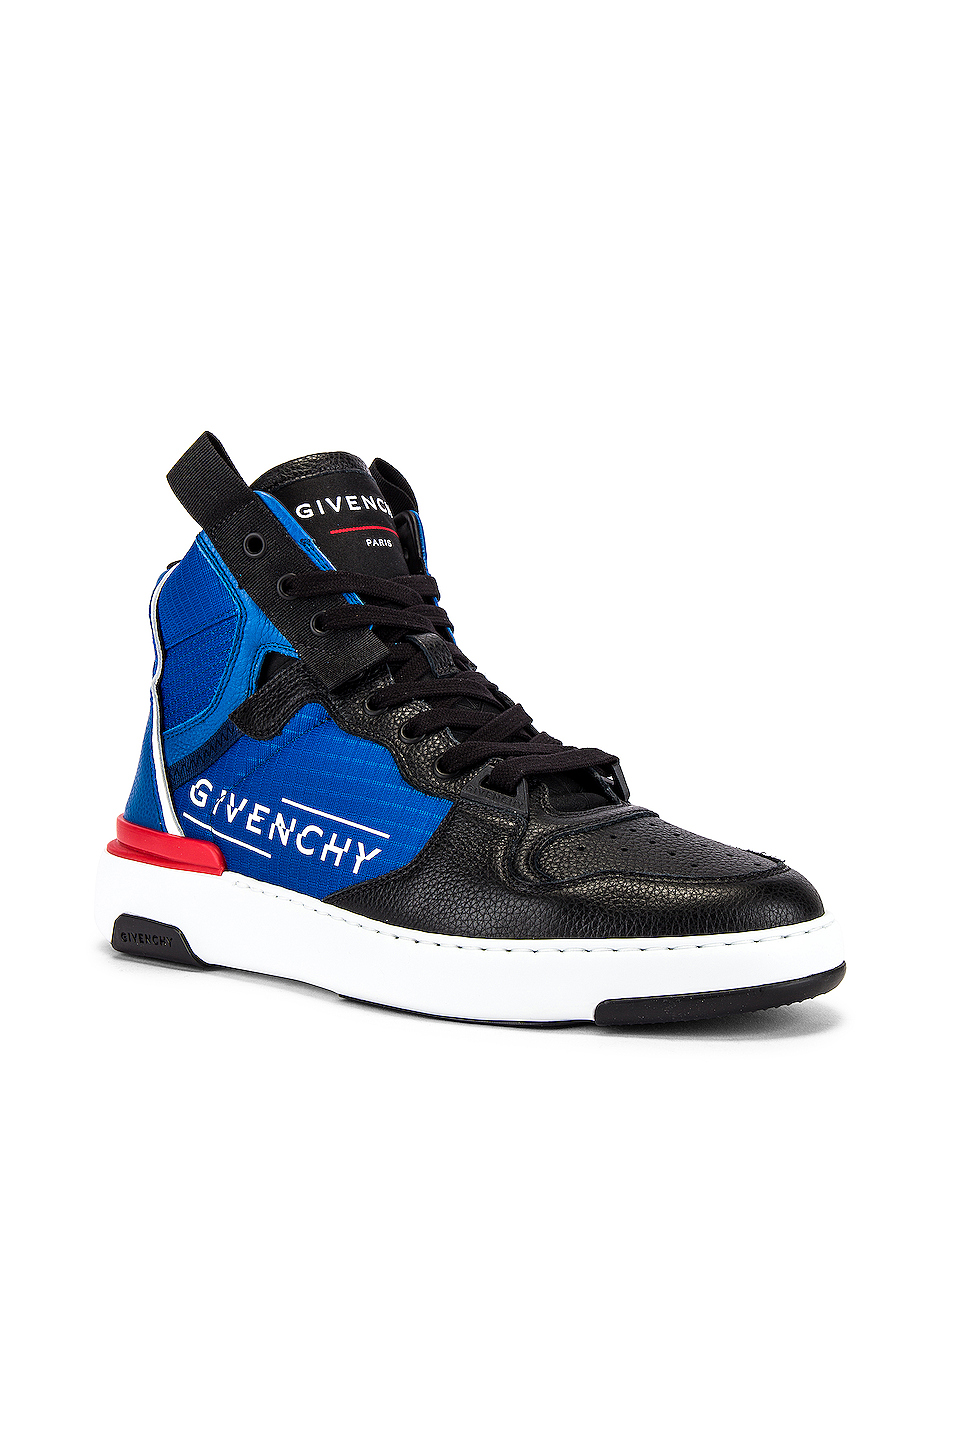 Where To Buy High Top Sneakers